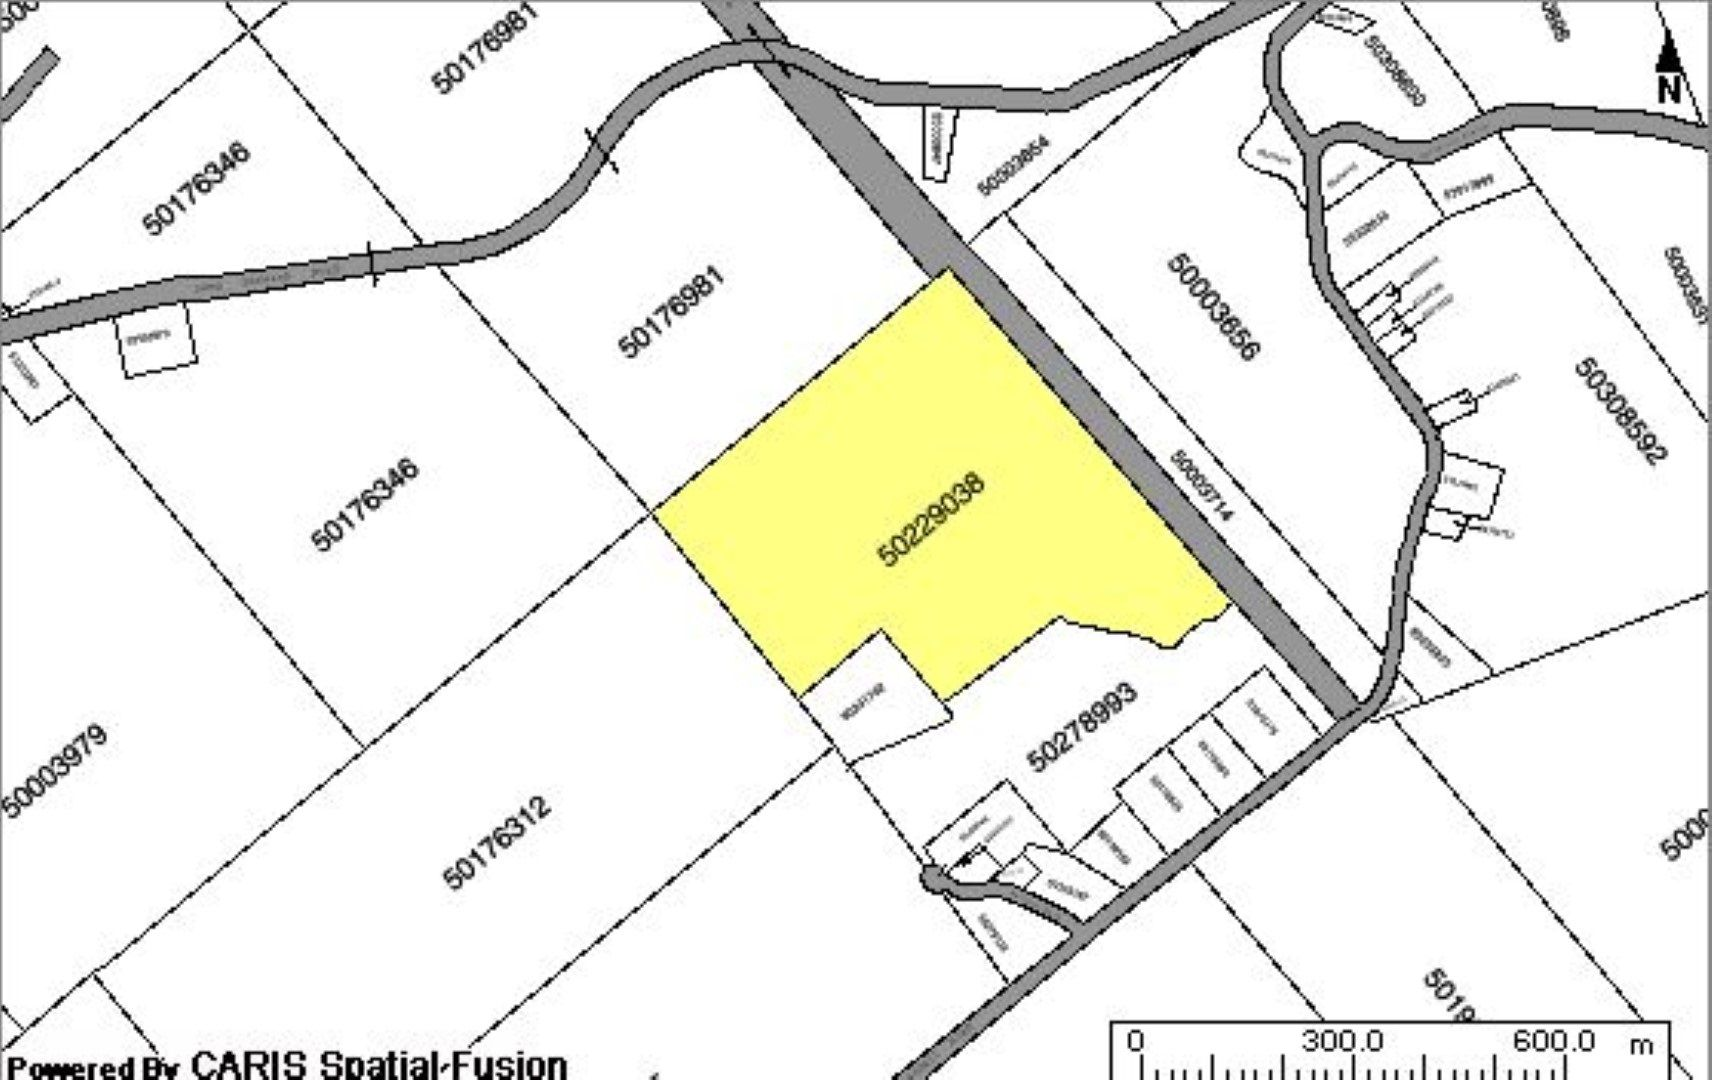 Main Photo: Lot Hatcher Road in Macdale: 306-Inverness County / Inverness & Area Vacant Land for sale (Highland Region)  : MLS®# 202108422